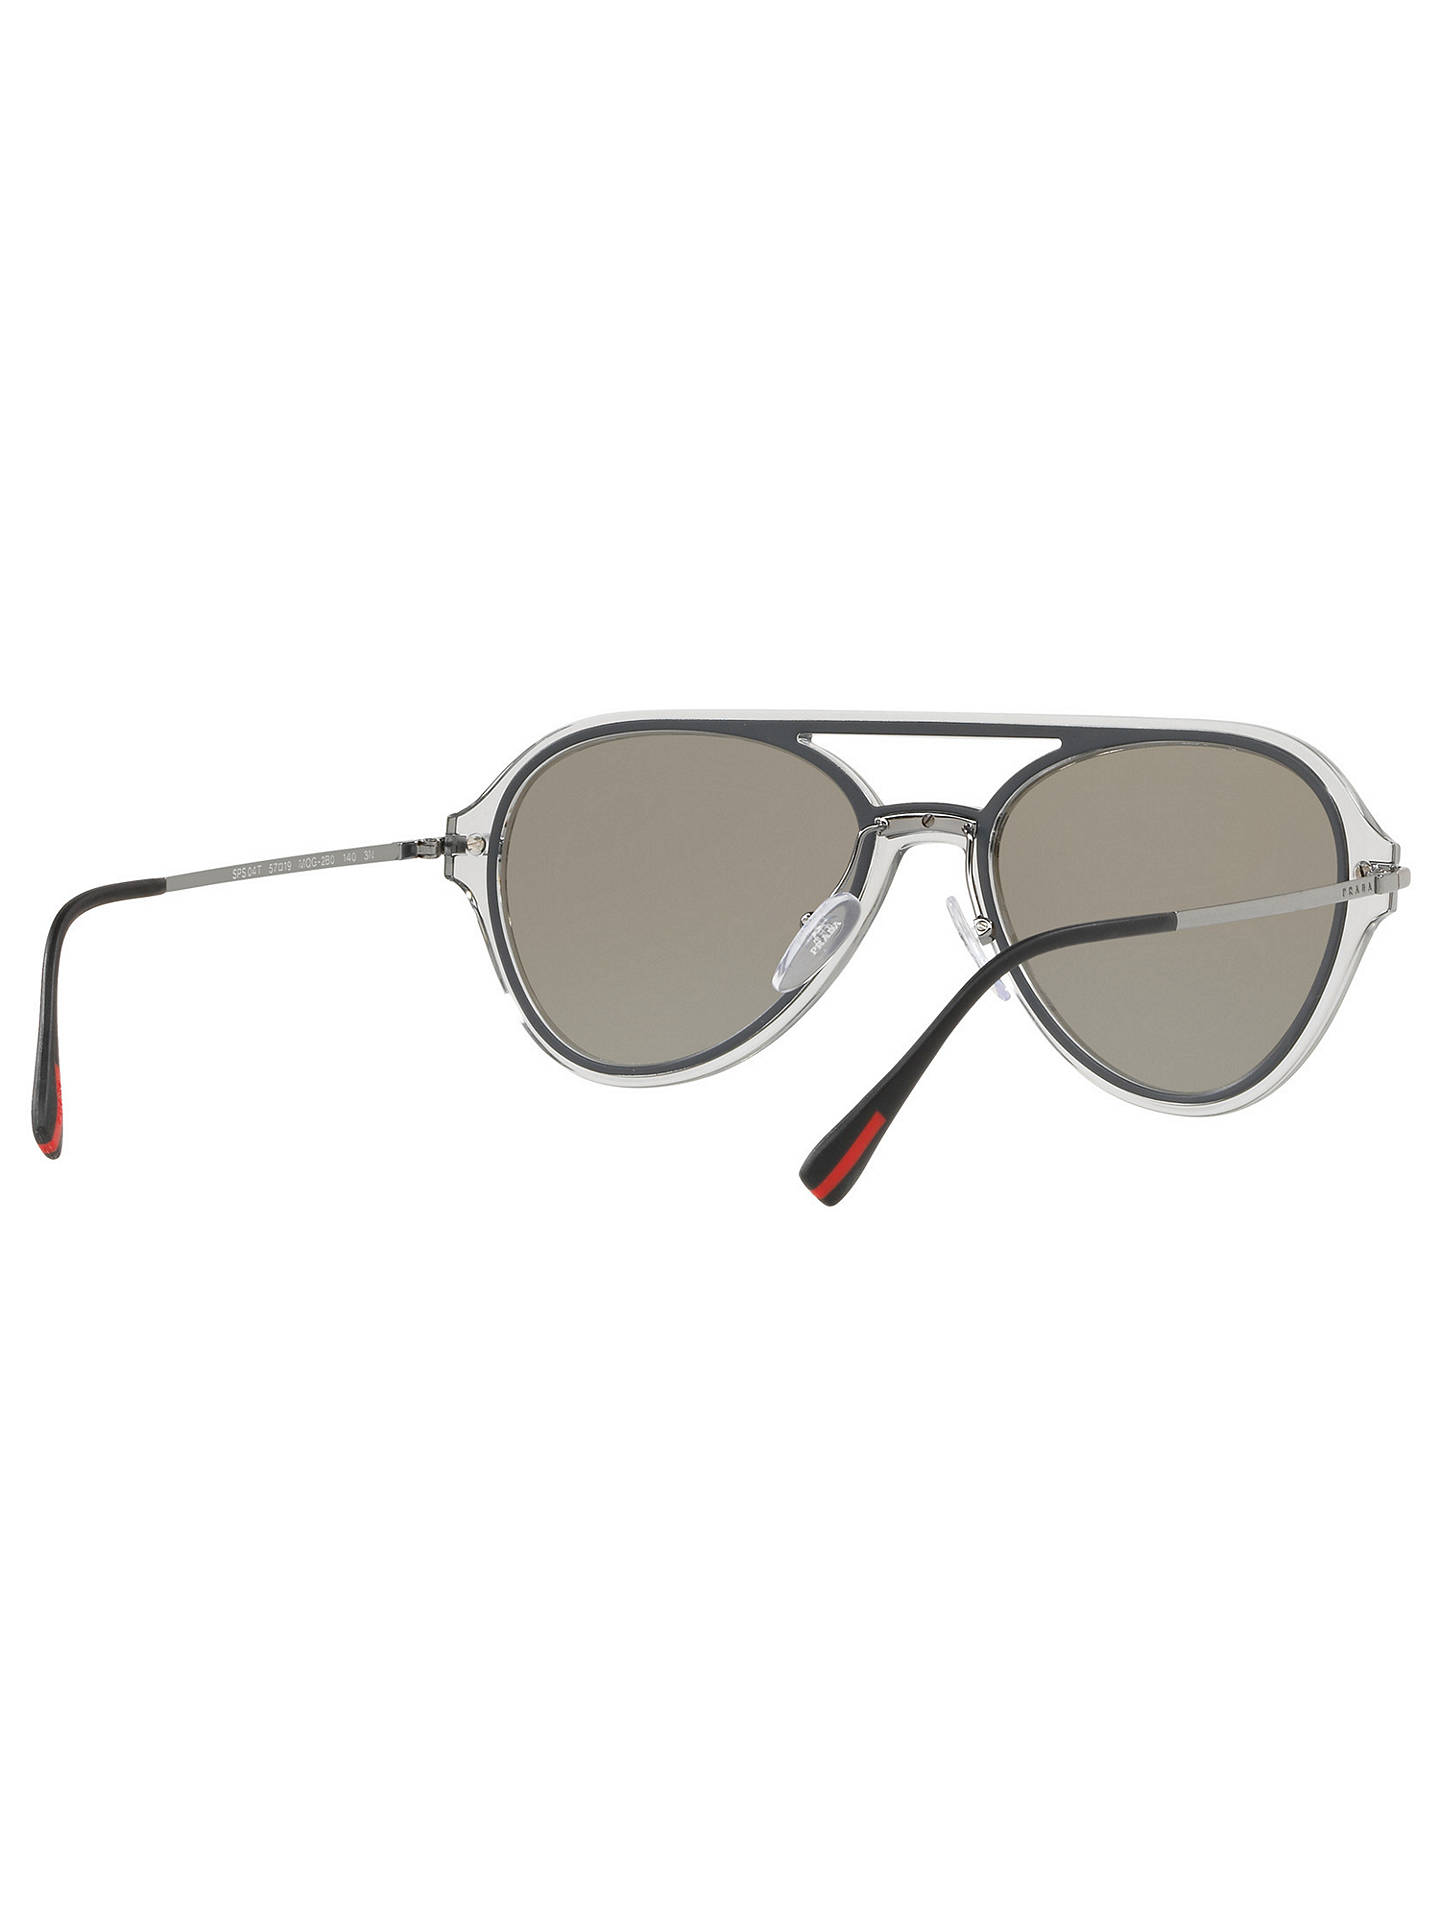 Buy Prada 04TS 57 Men's Polarised Aviator Sunglasses, Silver Online at johnlewis.com